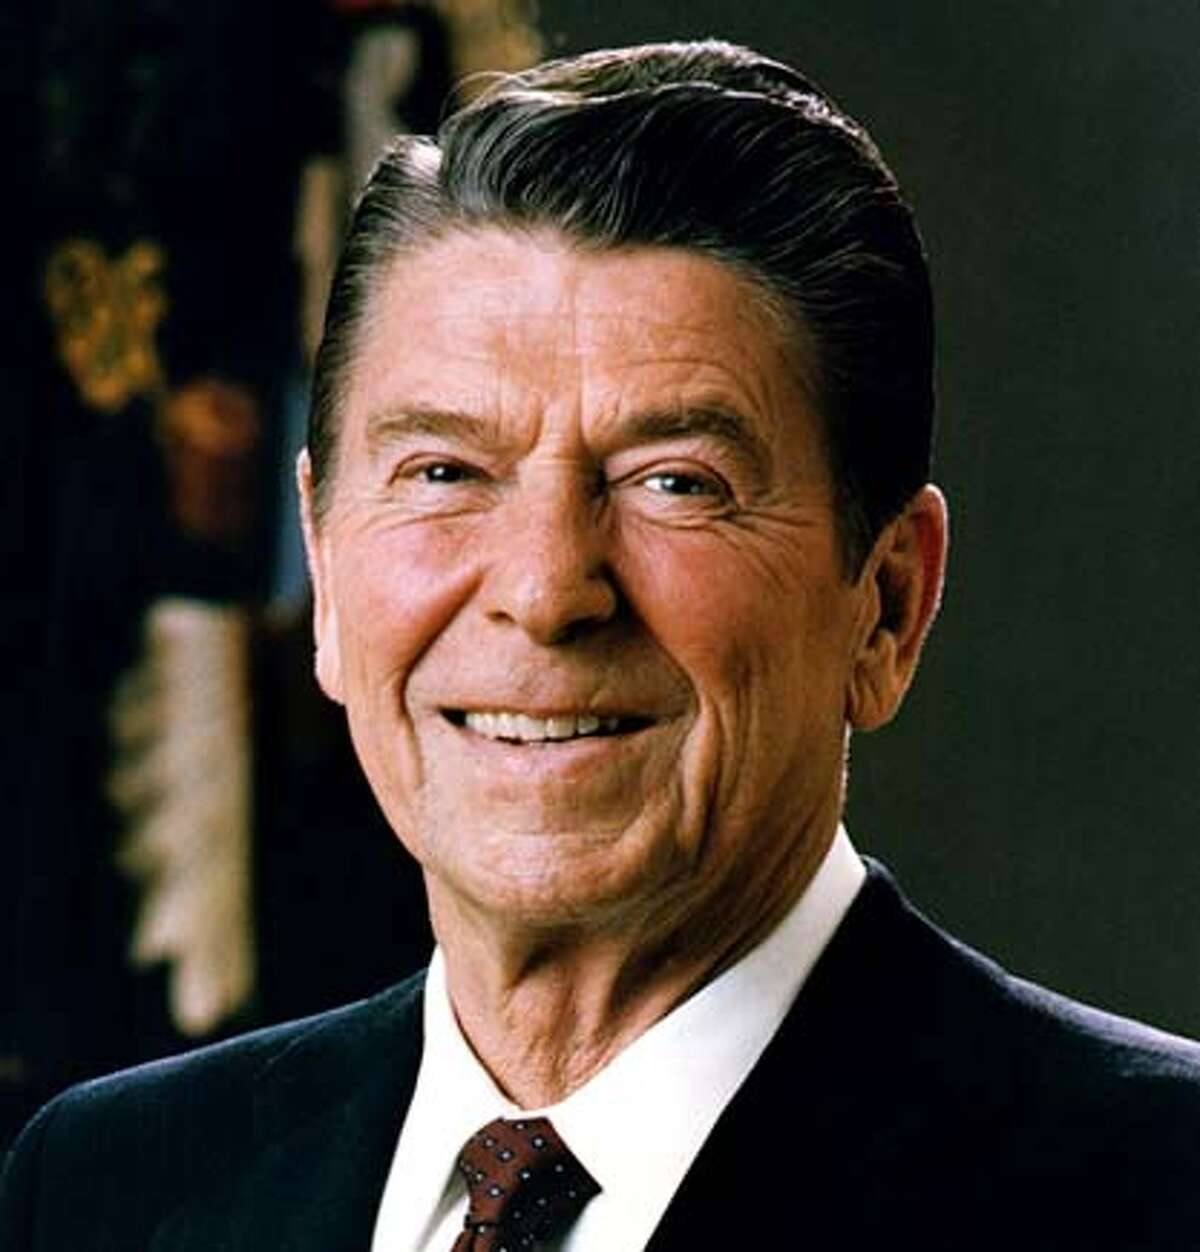 1/16/2009 ronald reagan [LegacyArchive] submitted ronald reagan